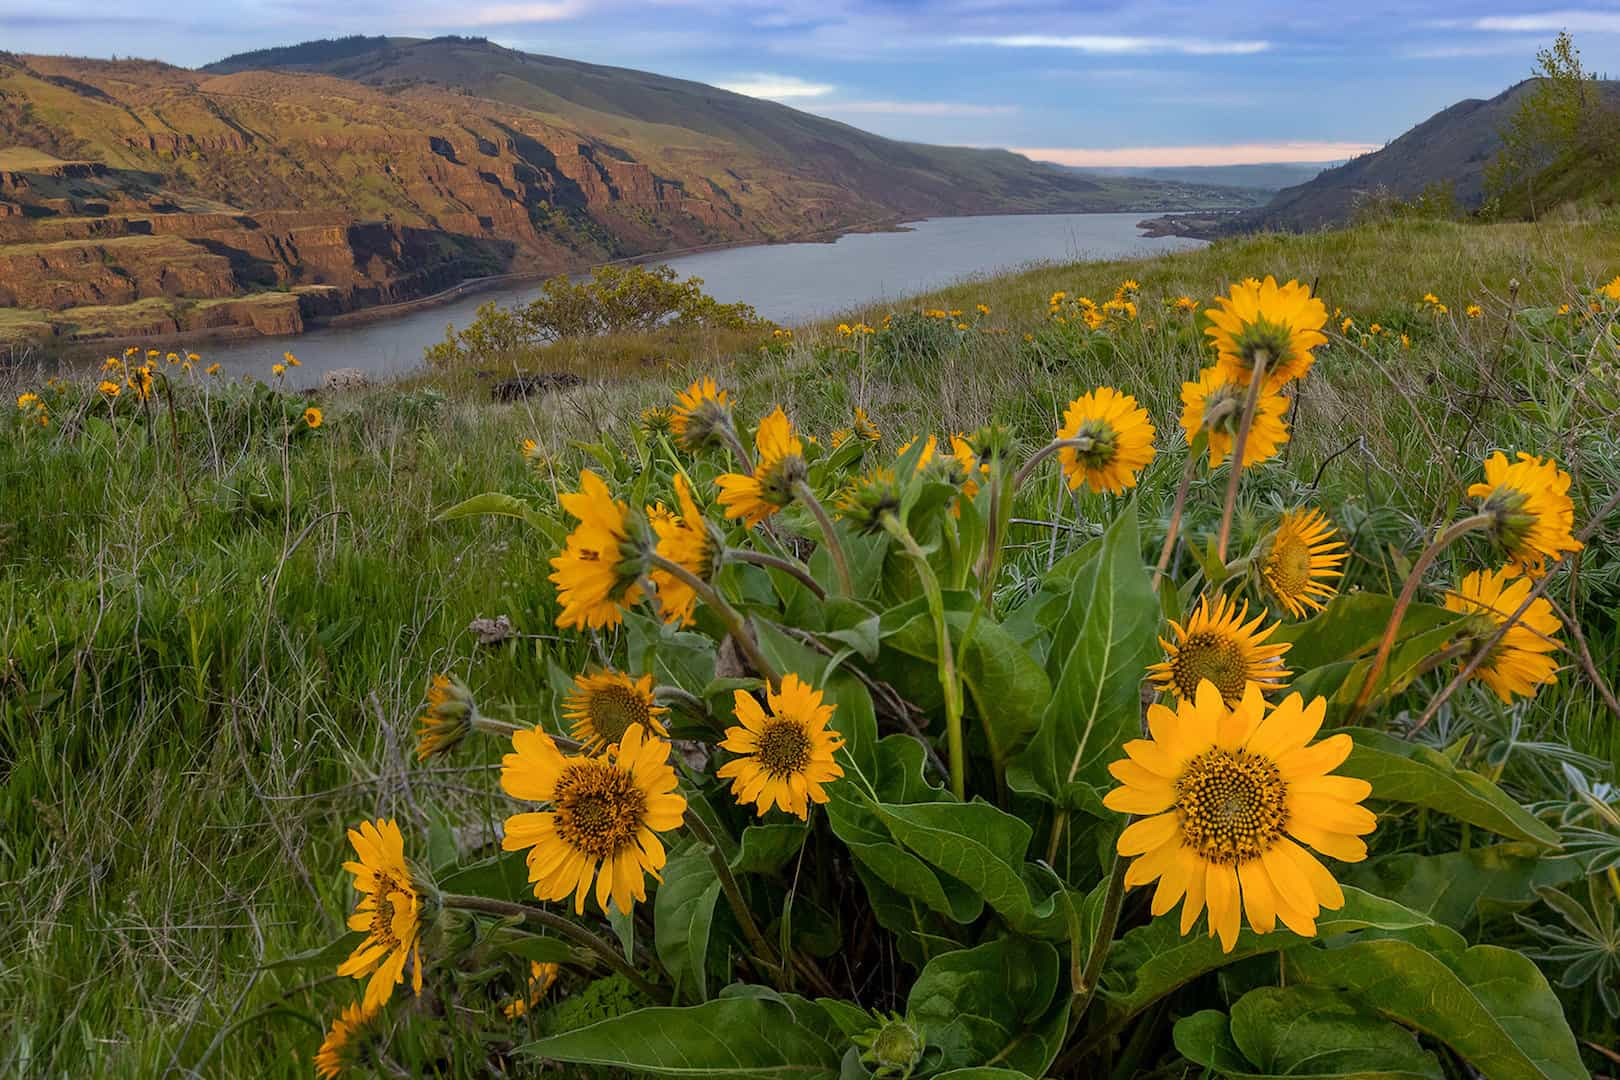 3.8.19_CeliaCarson_Wildflowers of Columbia River_450x300